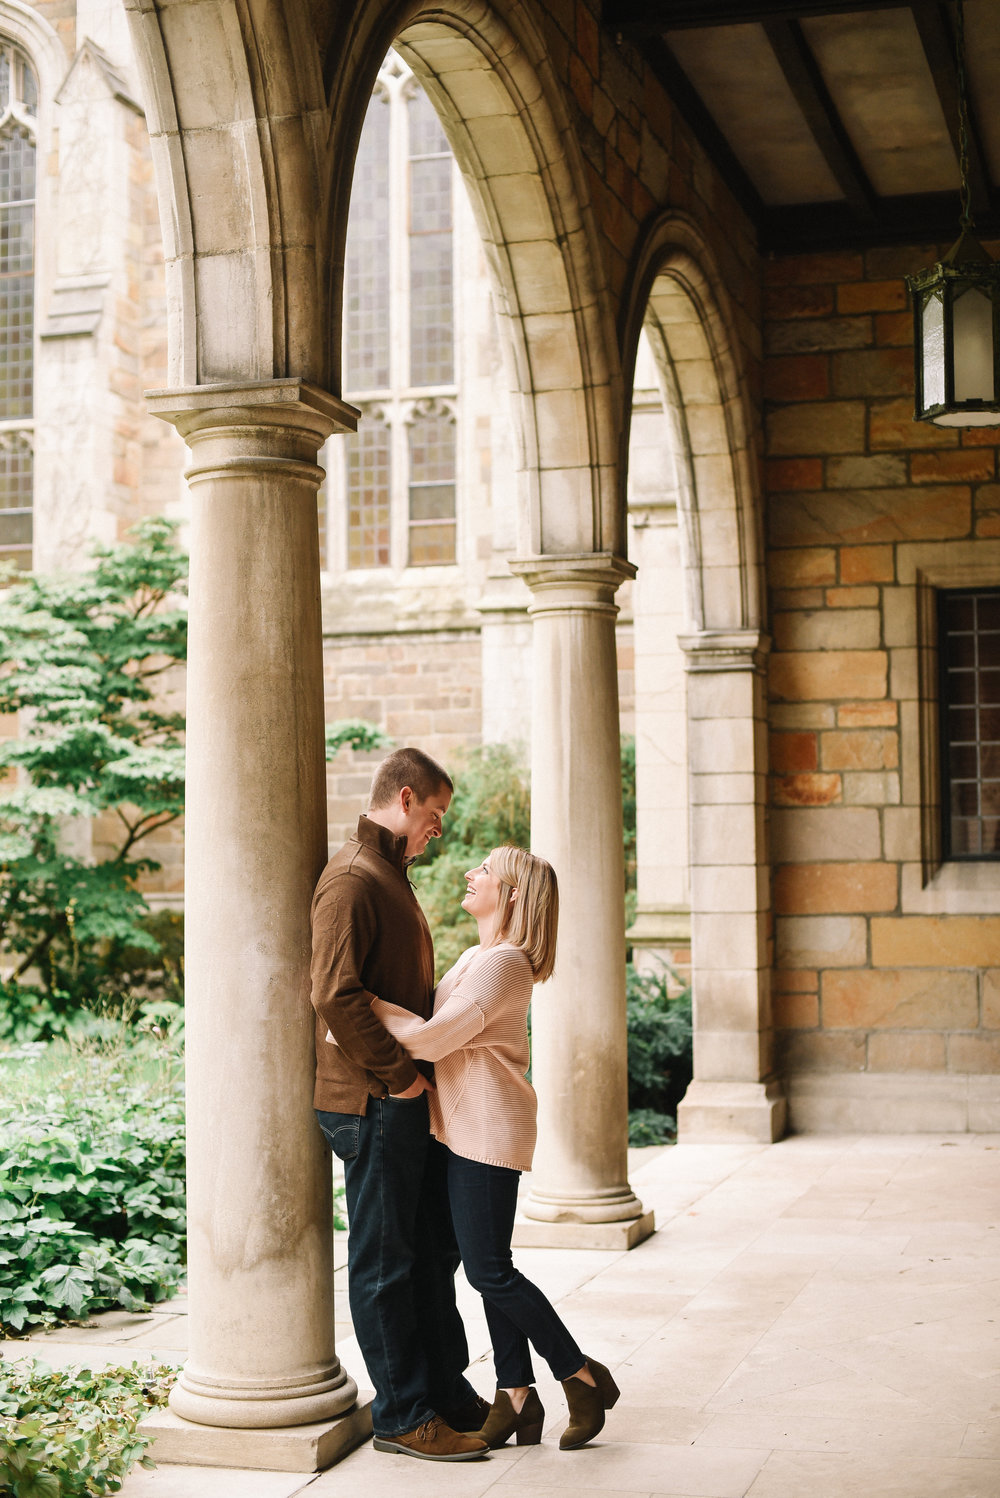 Law_Quad_Ann_Arbor_Engagement_Photos-5.jpg